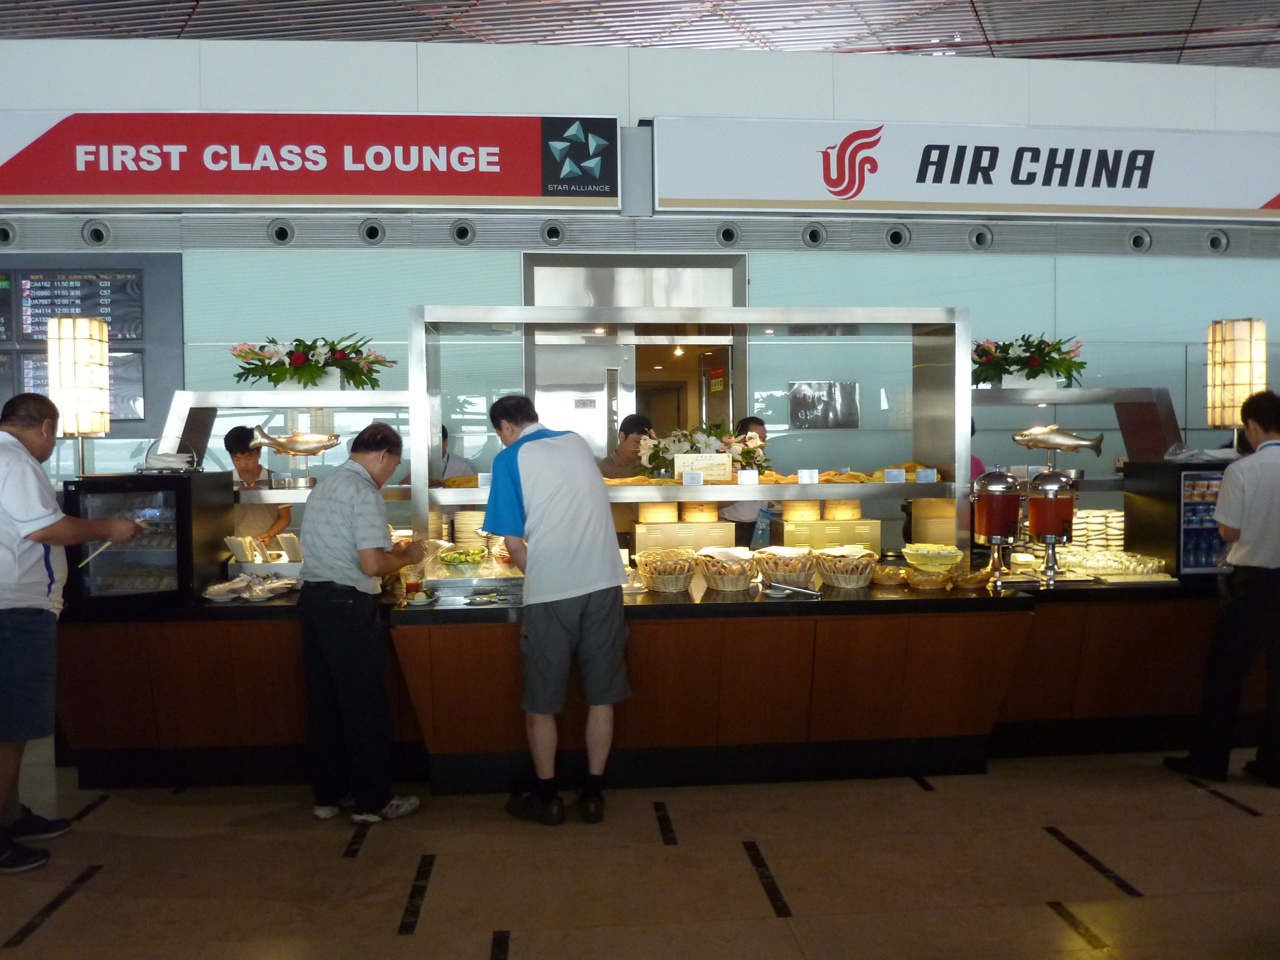 Air China Beijing T3C First class lounge_11.JPG